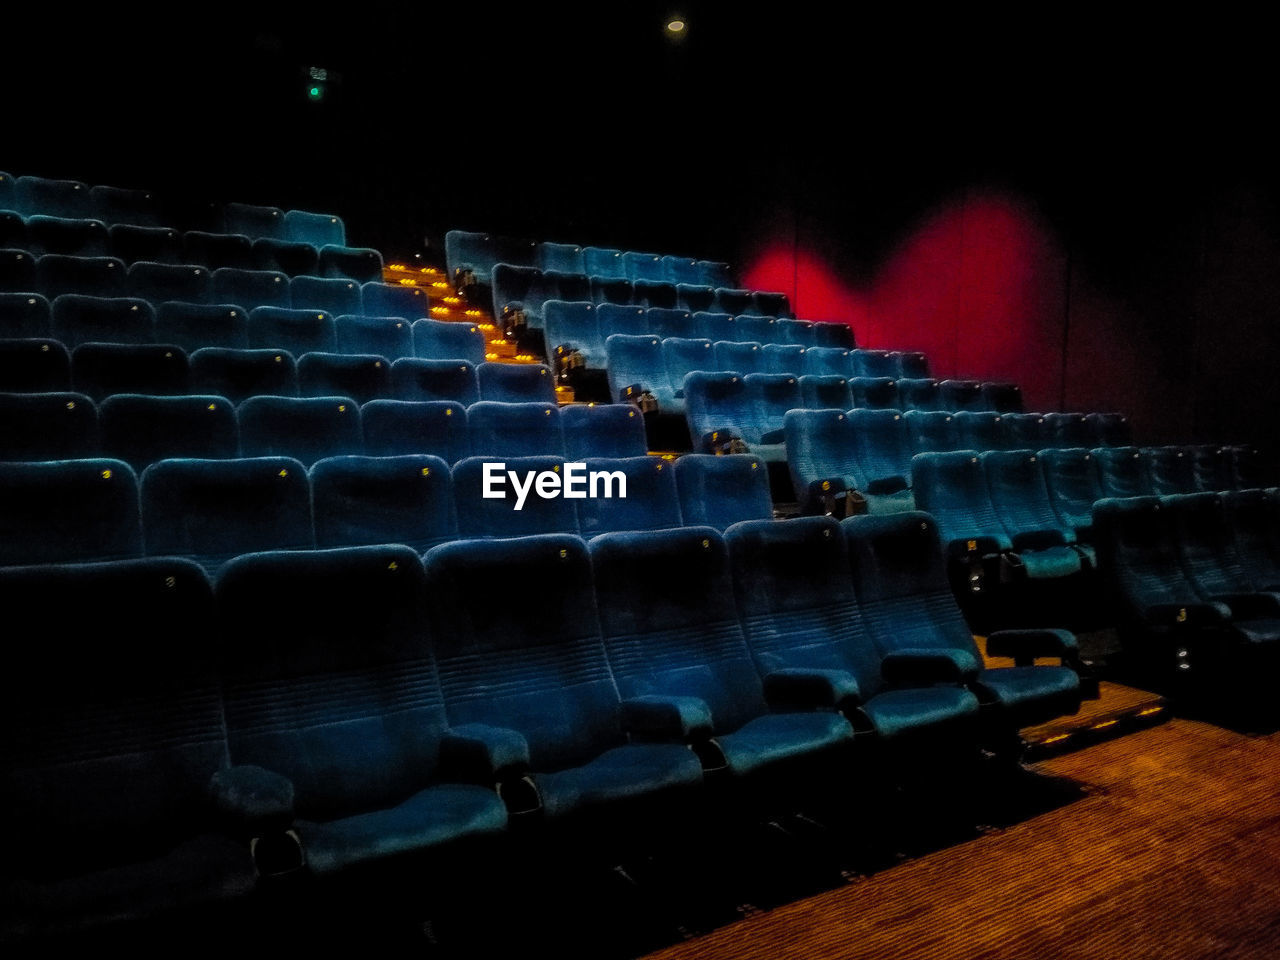 in a row, seat, arts culture and entertainment, indoors, empty, no people, movie theater, absence, repetition, side by side, theater, illuminated, chair, large group of objects, red, auditorium, order, arrangement, architecture, sport, nightlife